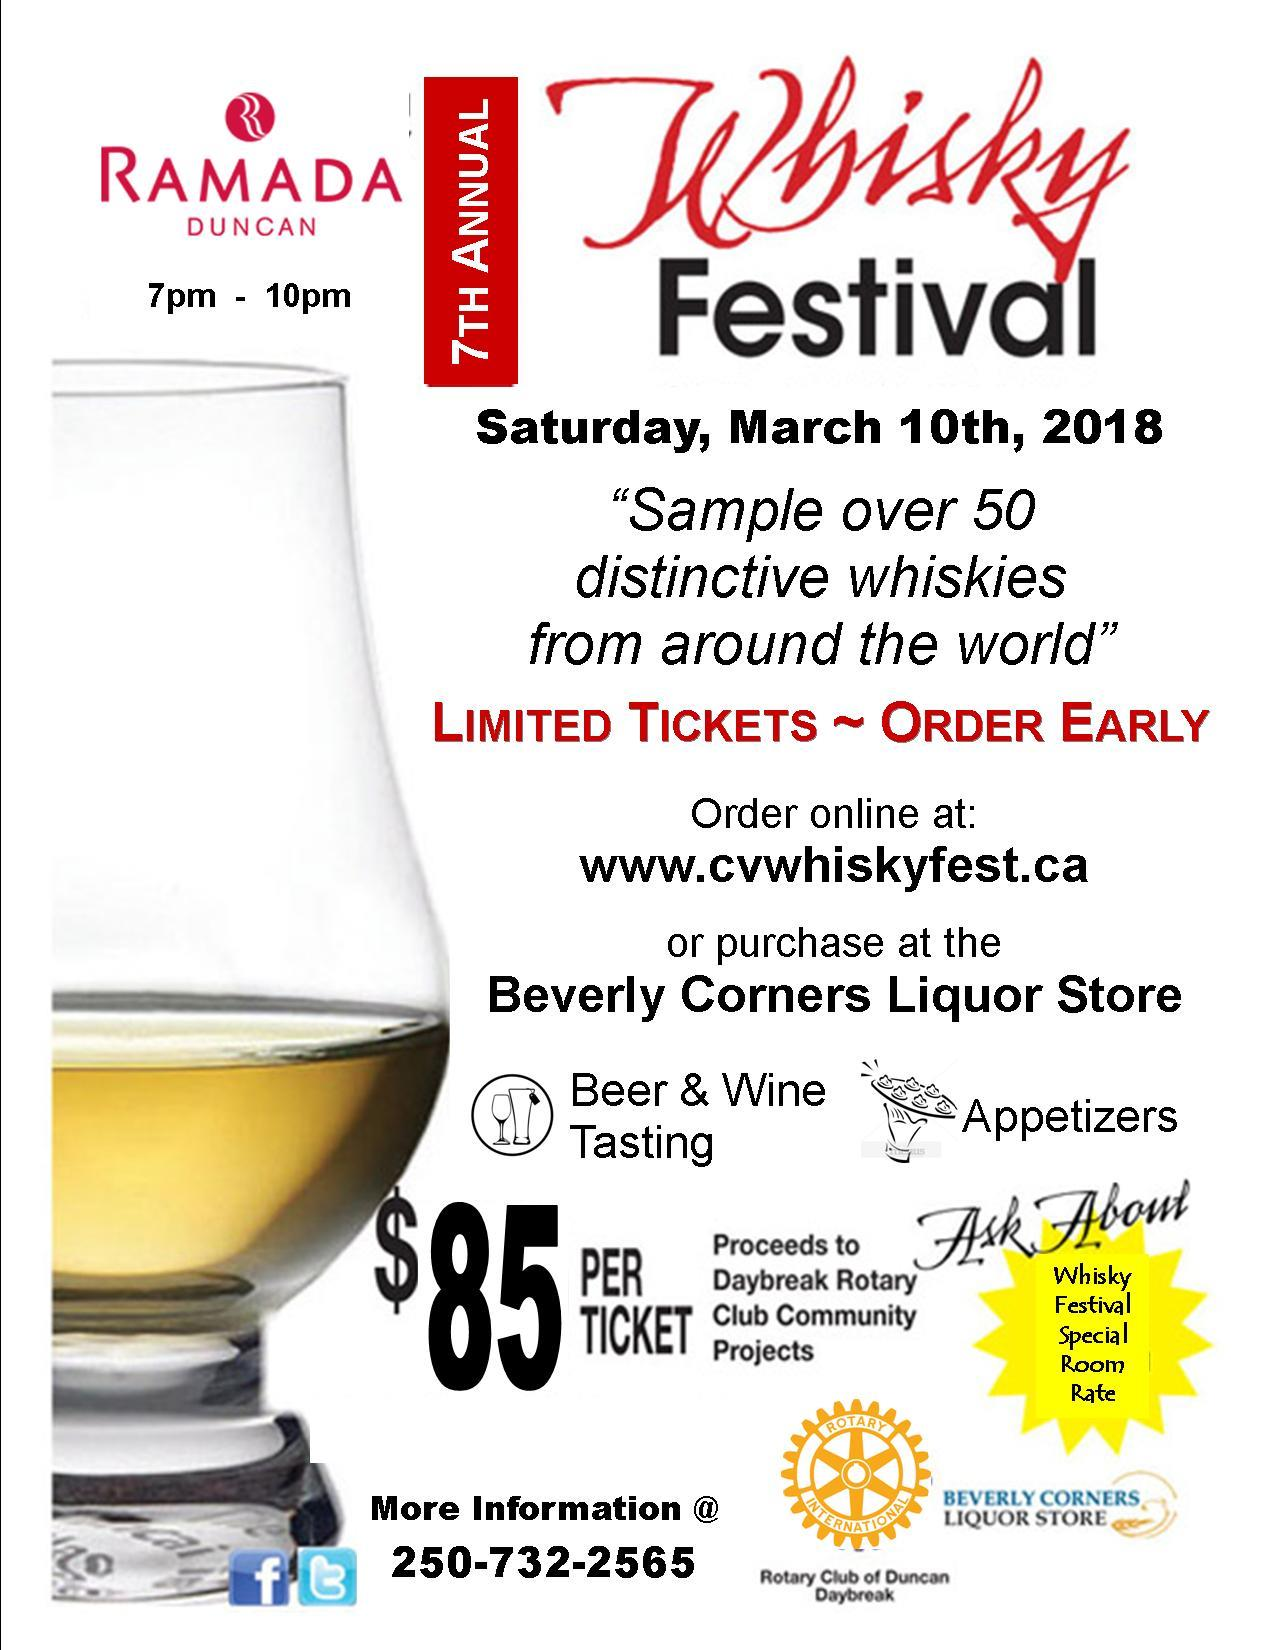 Whiskey Fest 2018 in Duncan BC